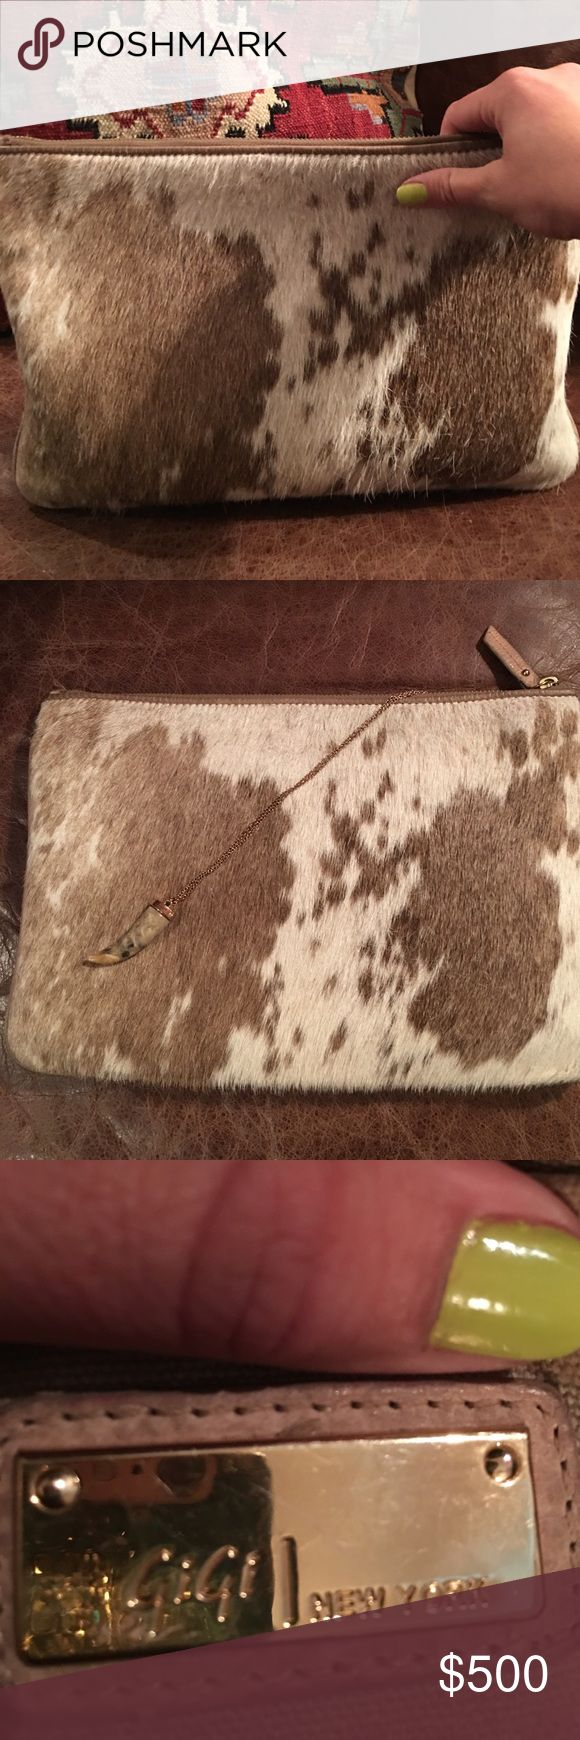 GiGi Authentic Cowhide Clutch/iPad case Fits the large iPad Pro!  I also have used as a clutch.  Real cowhide.  I get so many compliments on it and hate to part with it.  Paid $1200.00.  There are a few make-up stains in the lining. GiGi New York Accessories Tablet Cases